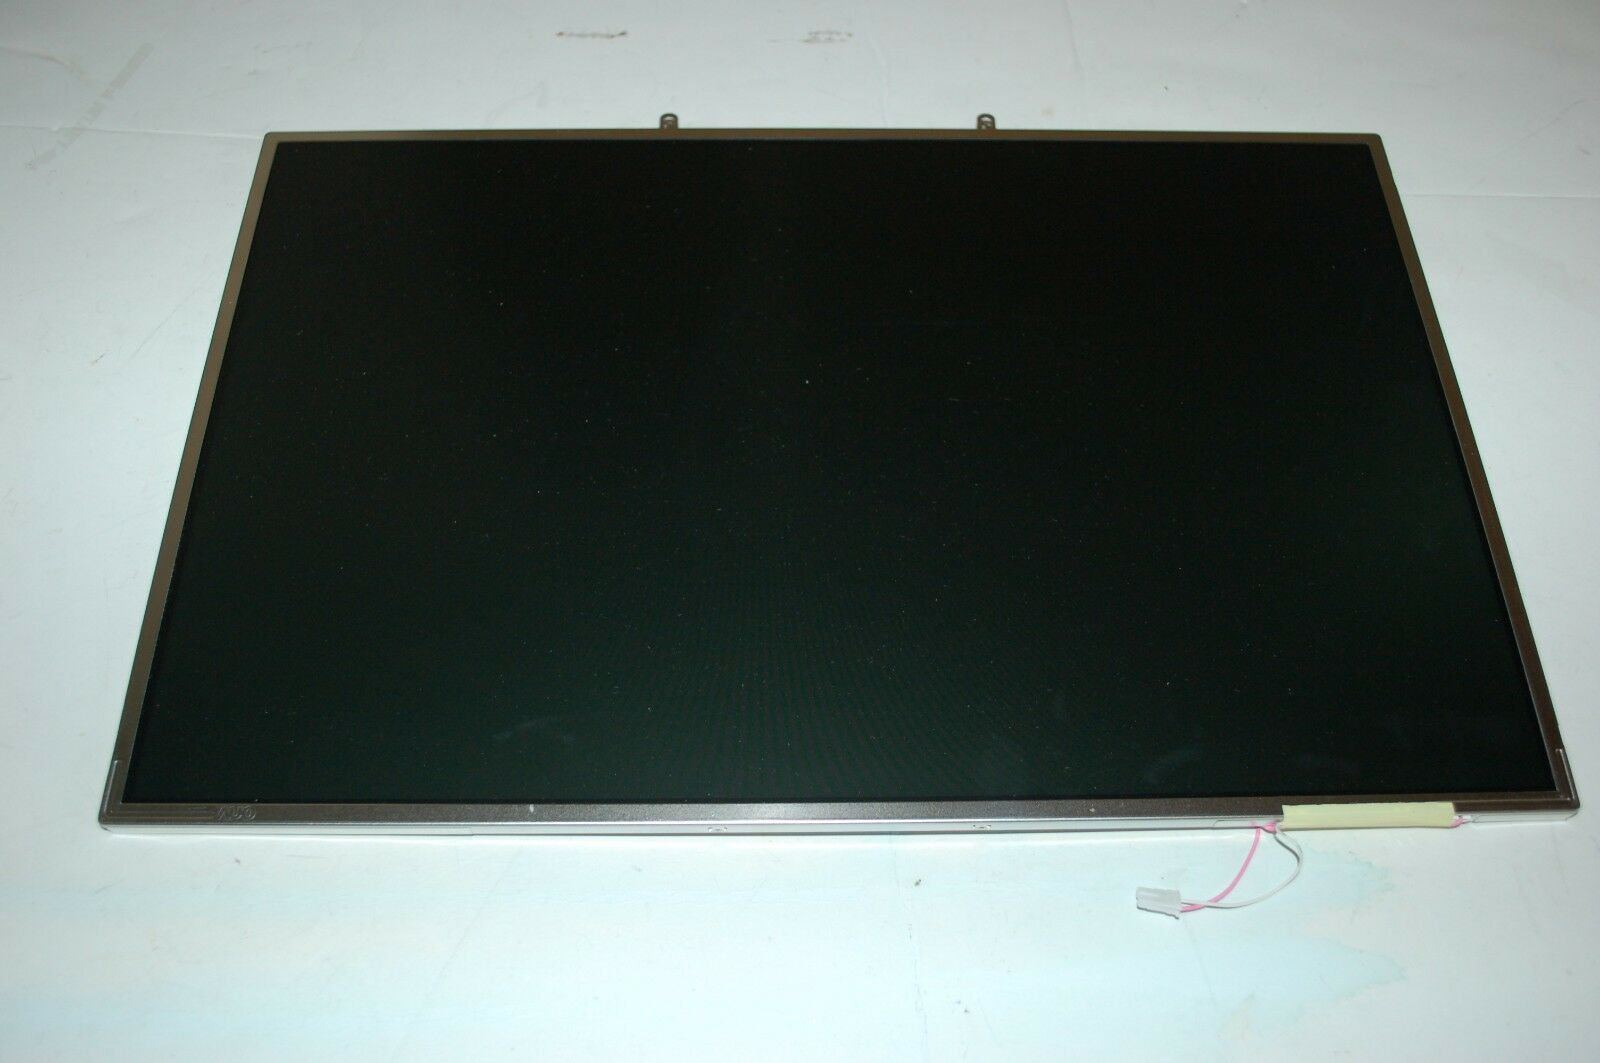 "NEW C751R LTN170CT13 Genuine Dell Precision M6500 17/"" WUXGA LED Screen Display"